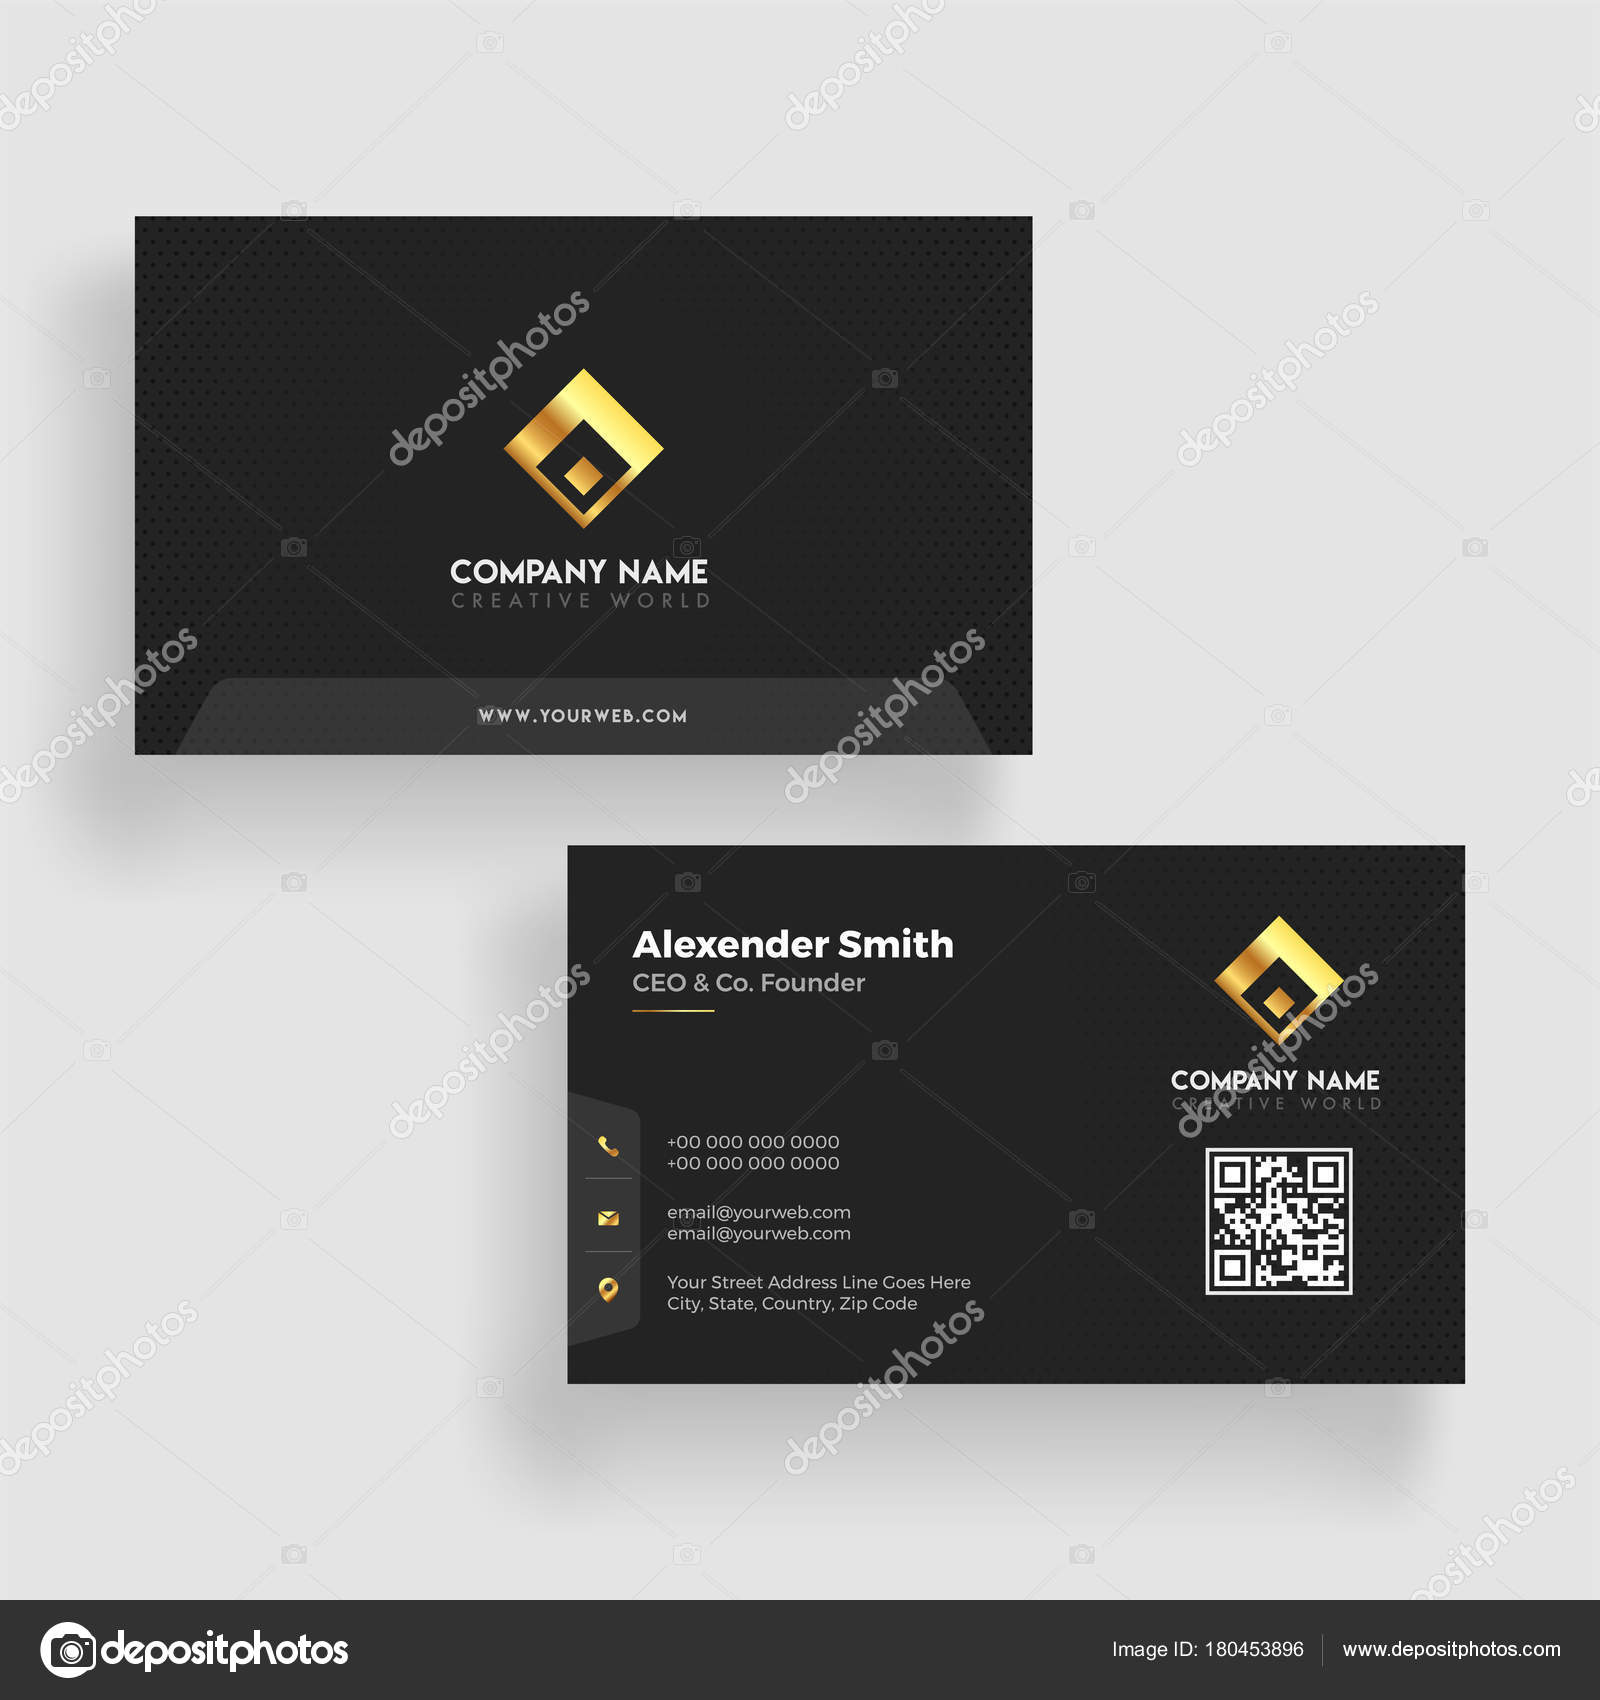 Modern business card template design both sided contact card f modern business card template design both sided contact card f stock vector fbccfo